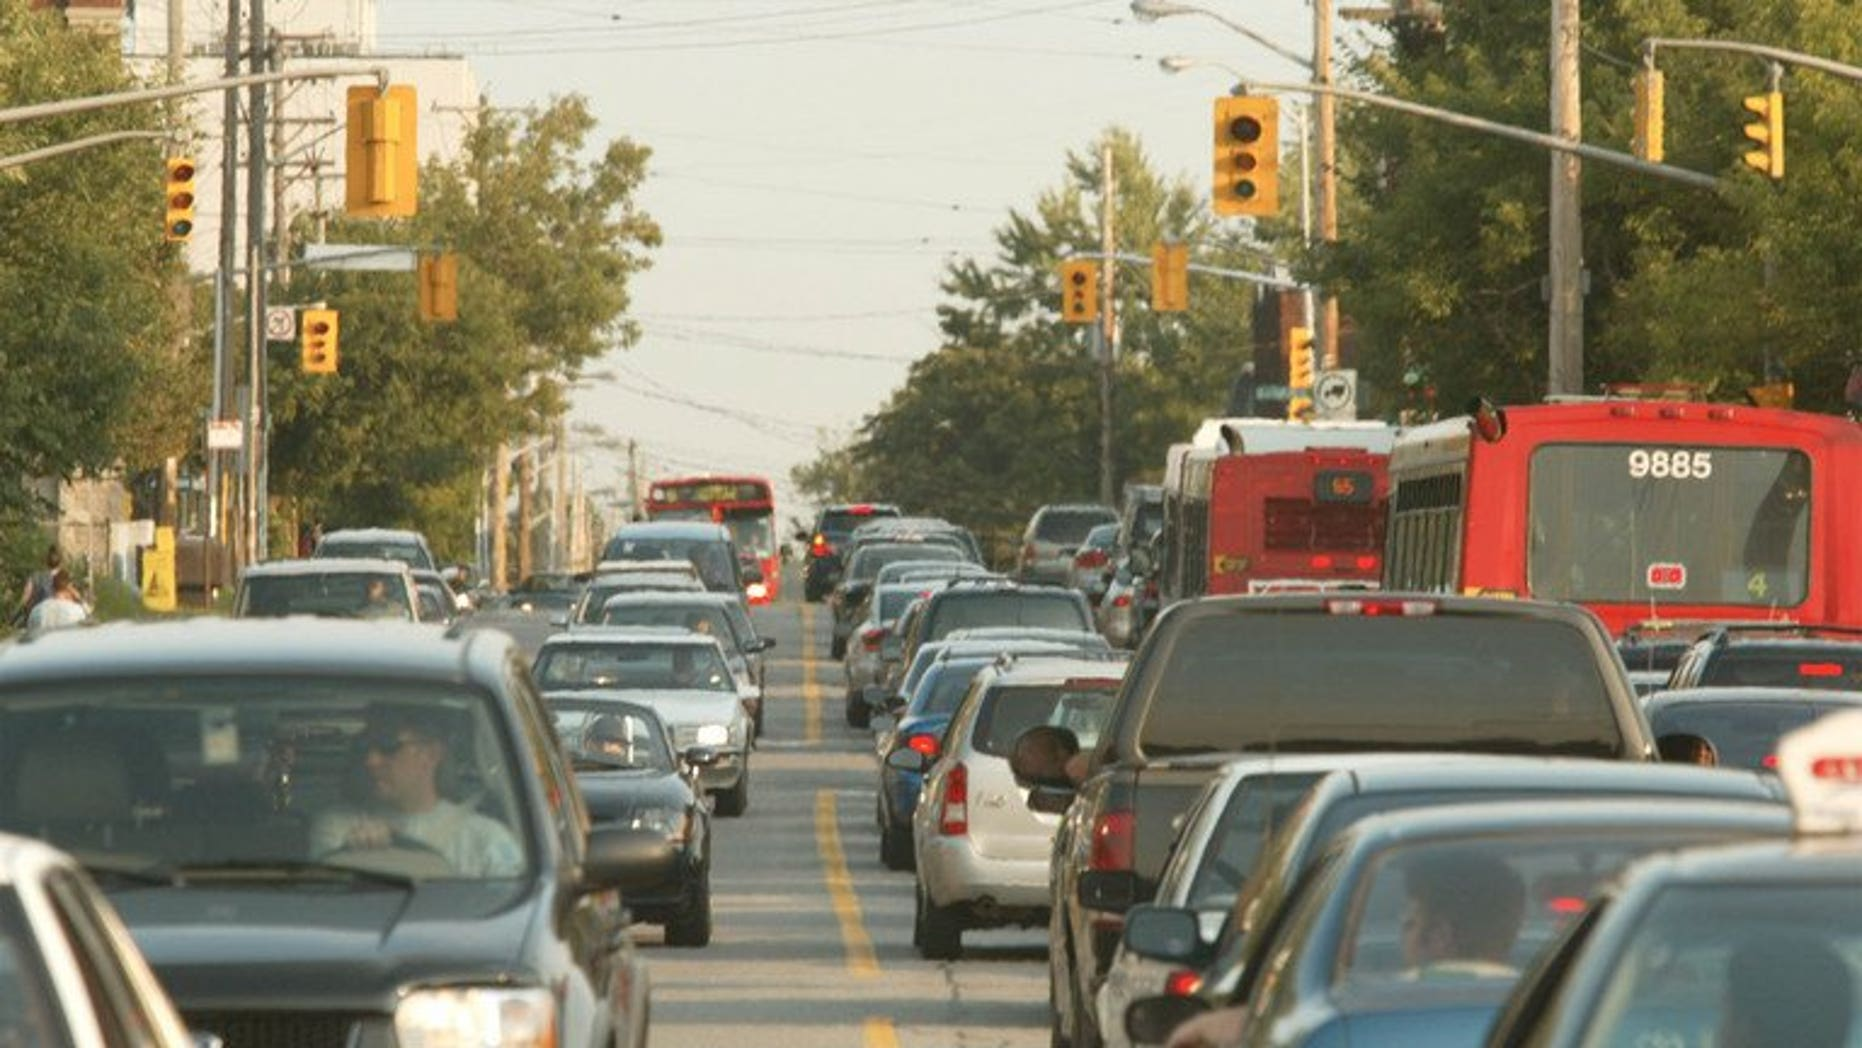 Traffic in Ottawa, Canada on August 11, 2003. Canadian consumer prices jumped at an annual rate of 1.2 percent in June, led by higher new car and gasolines prices, the government statistical agency said Friday.